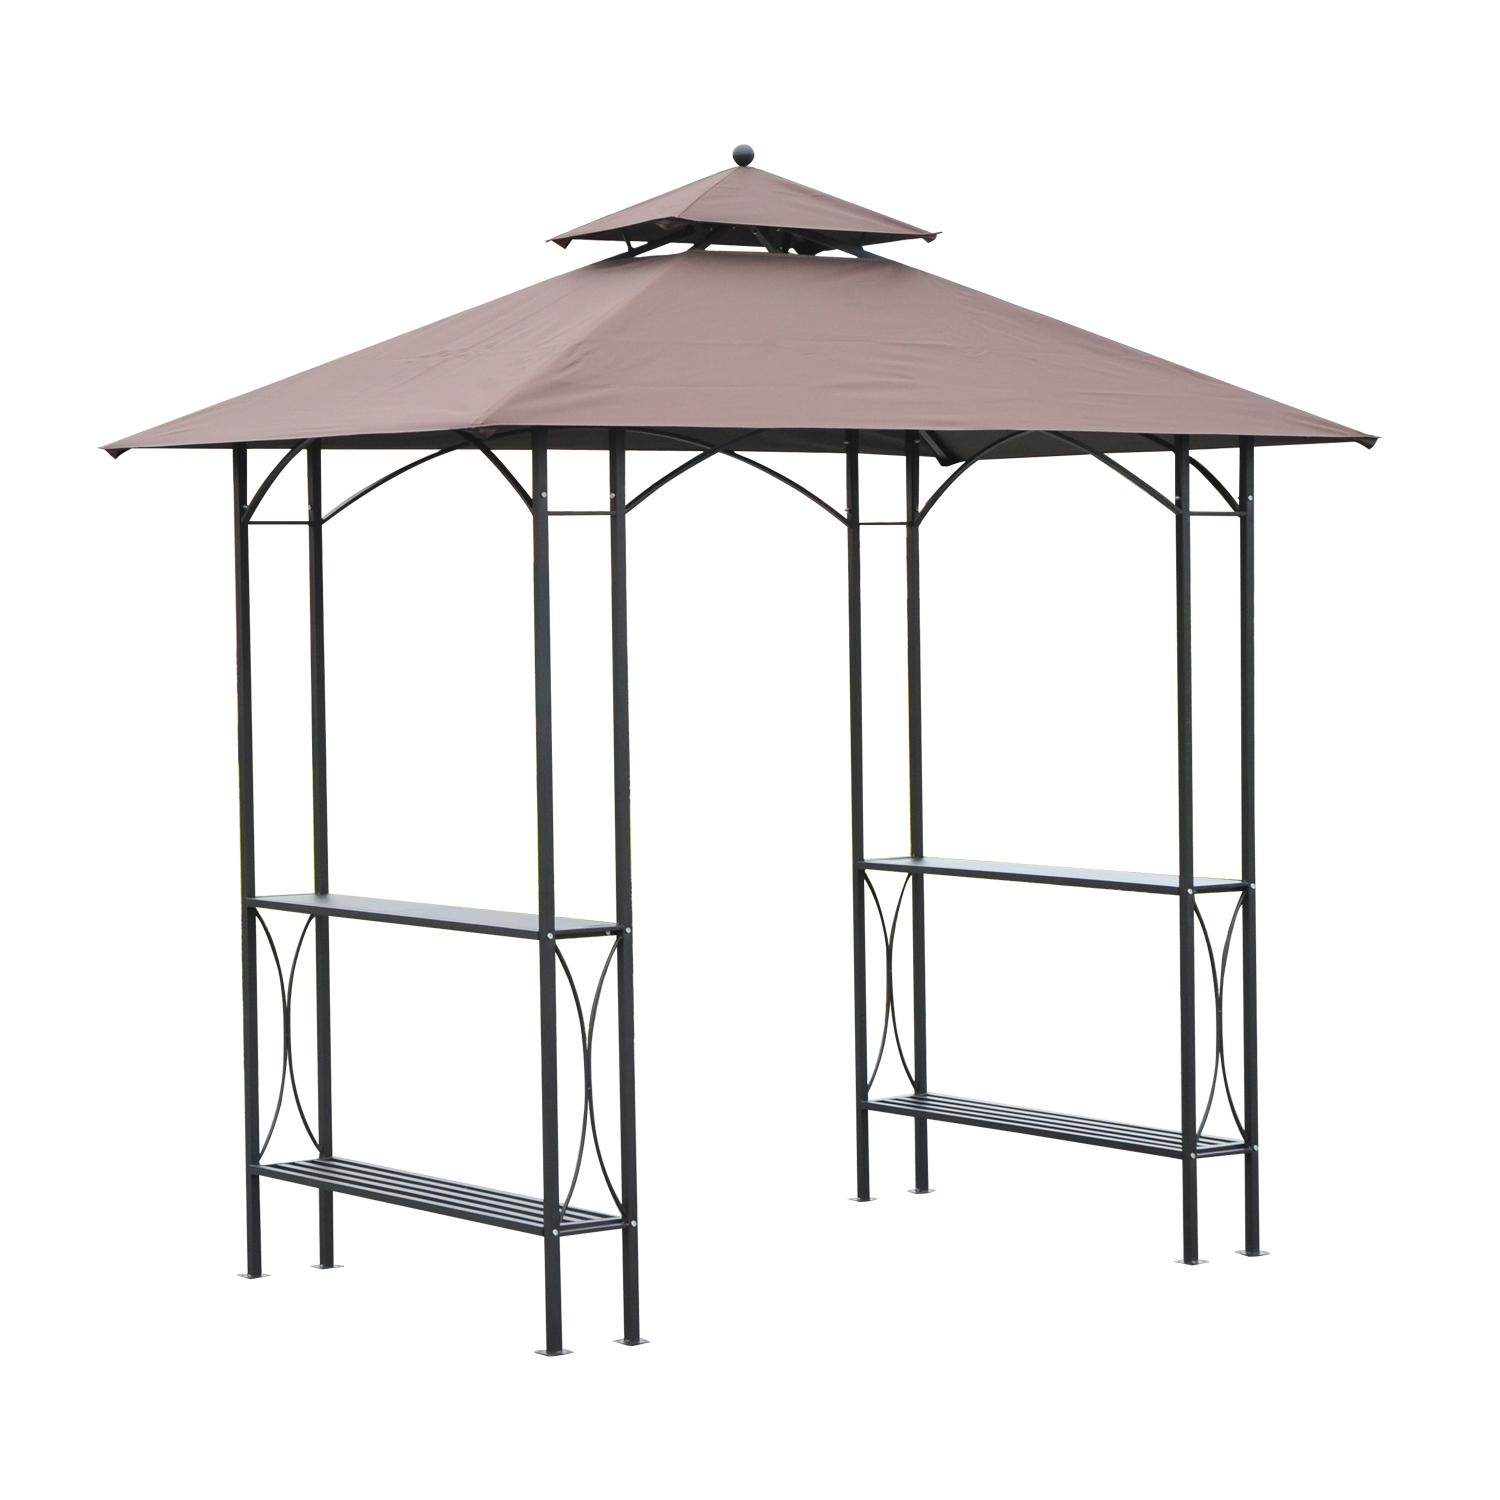 Outsunny 8 ft. 2-Tier Outdoor Grill Gazebo